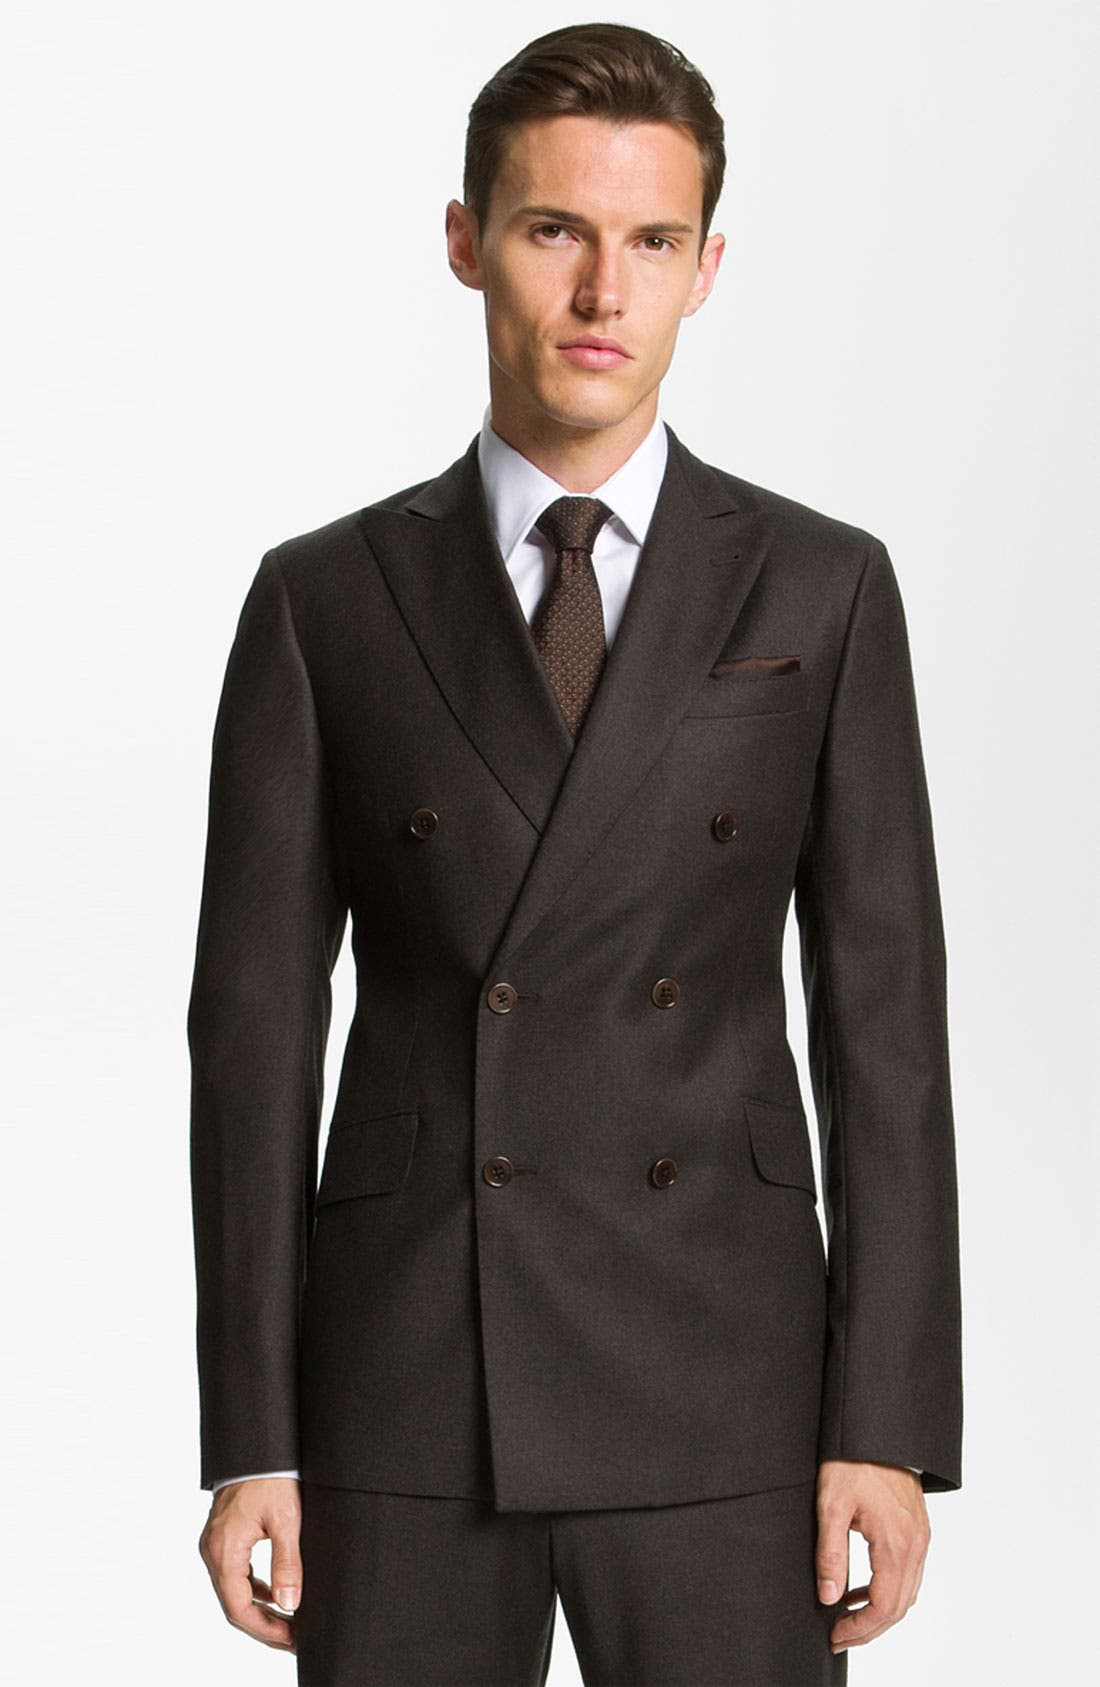 Alternate Image 1 Selected - Armani Collezioni 'Sartorial' Double Breasted Trim Fit Suit